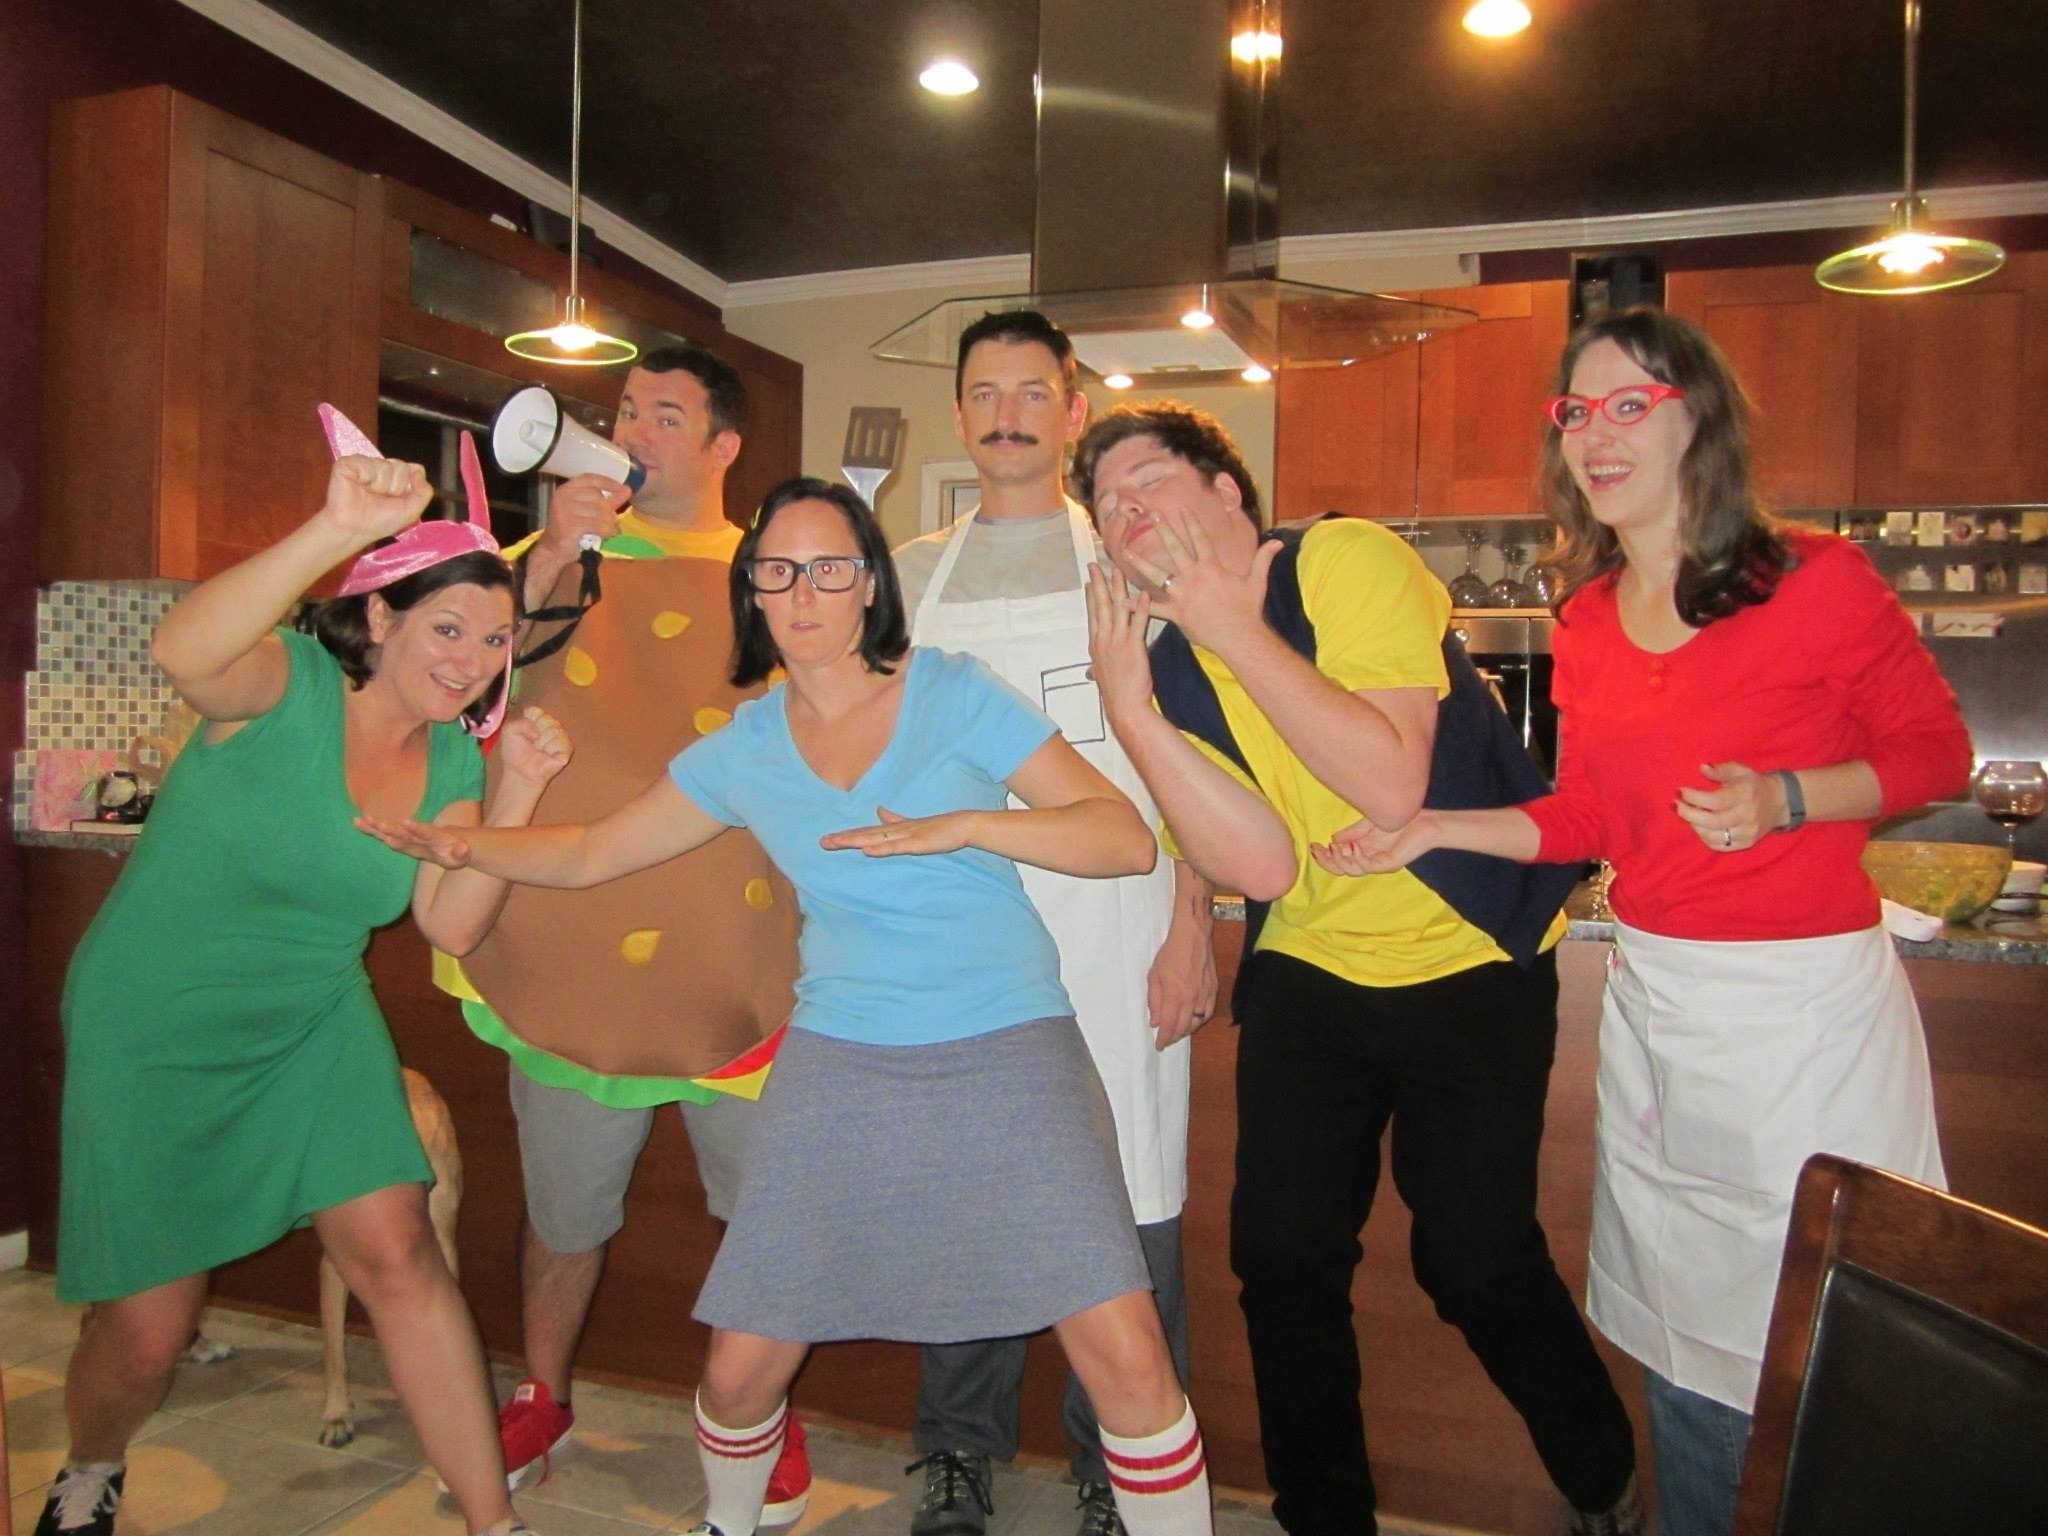 10 Great Group Of 5 Halloween Costume Ideas 35 fun group halloween costumes for you and your friends group 6 2020